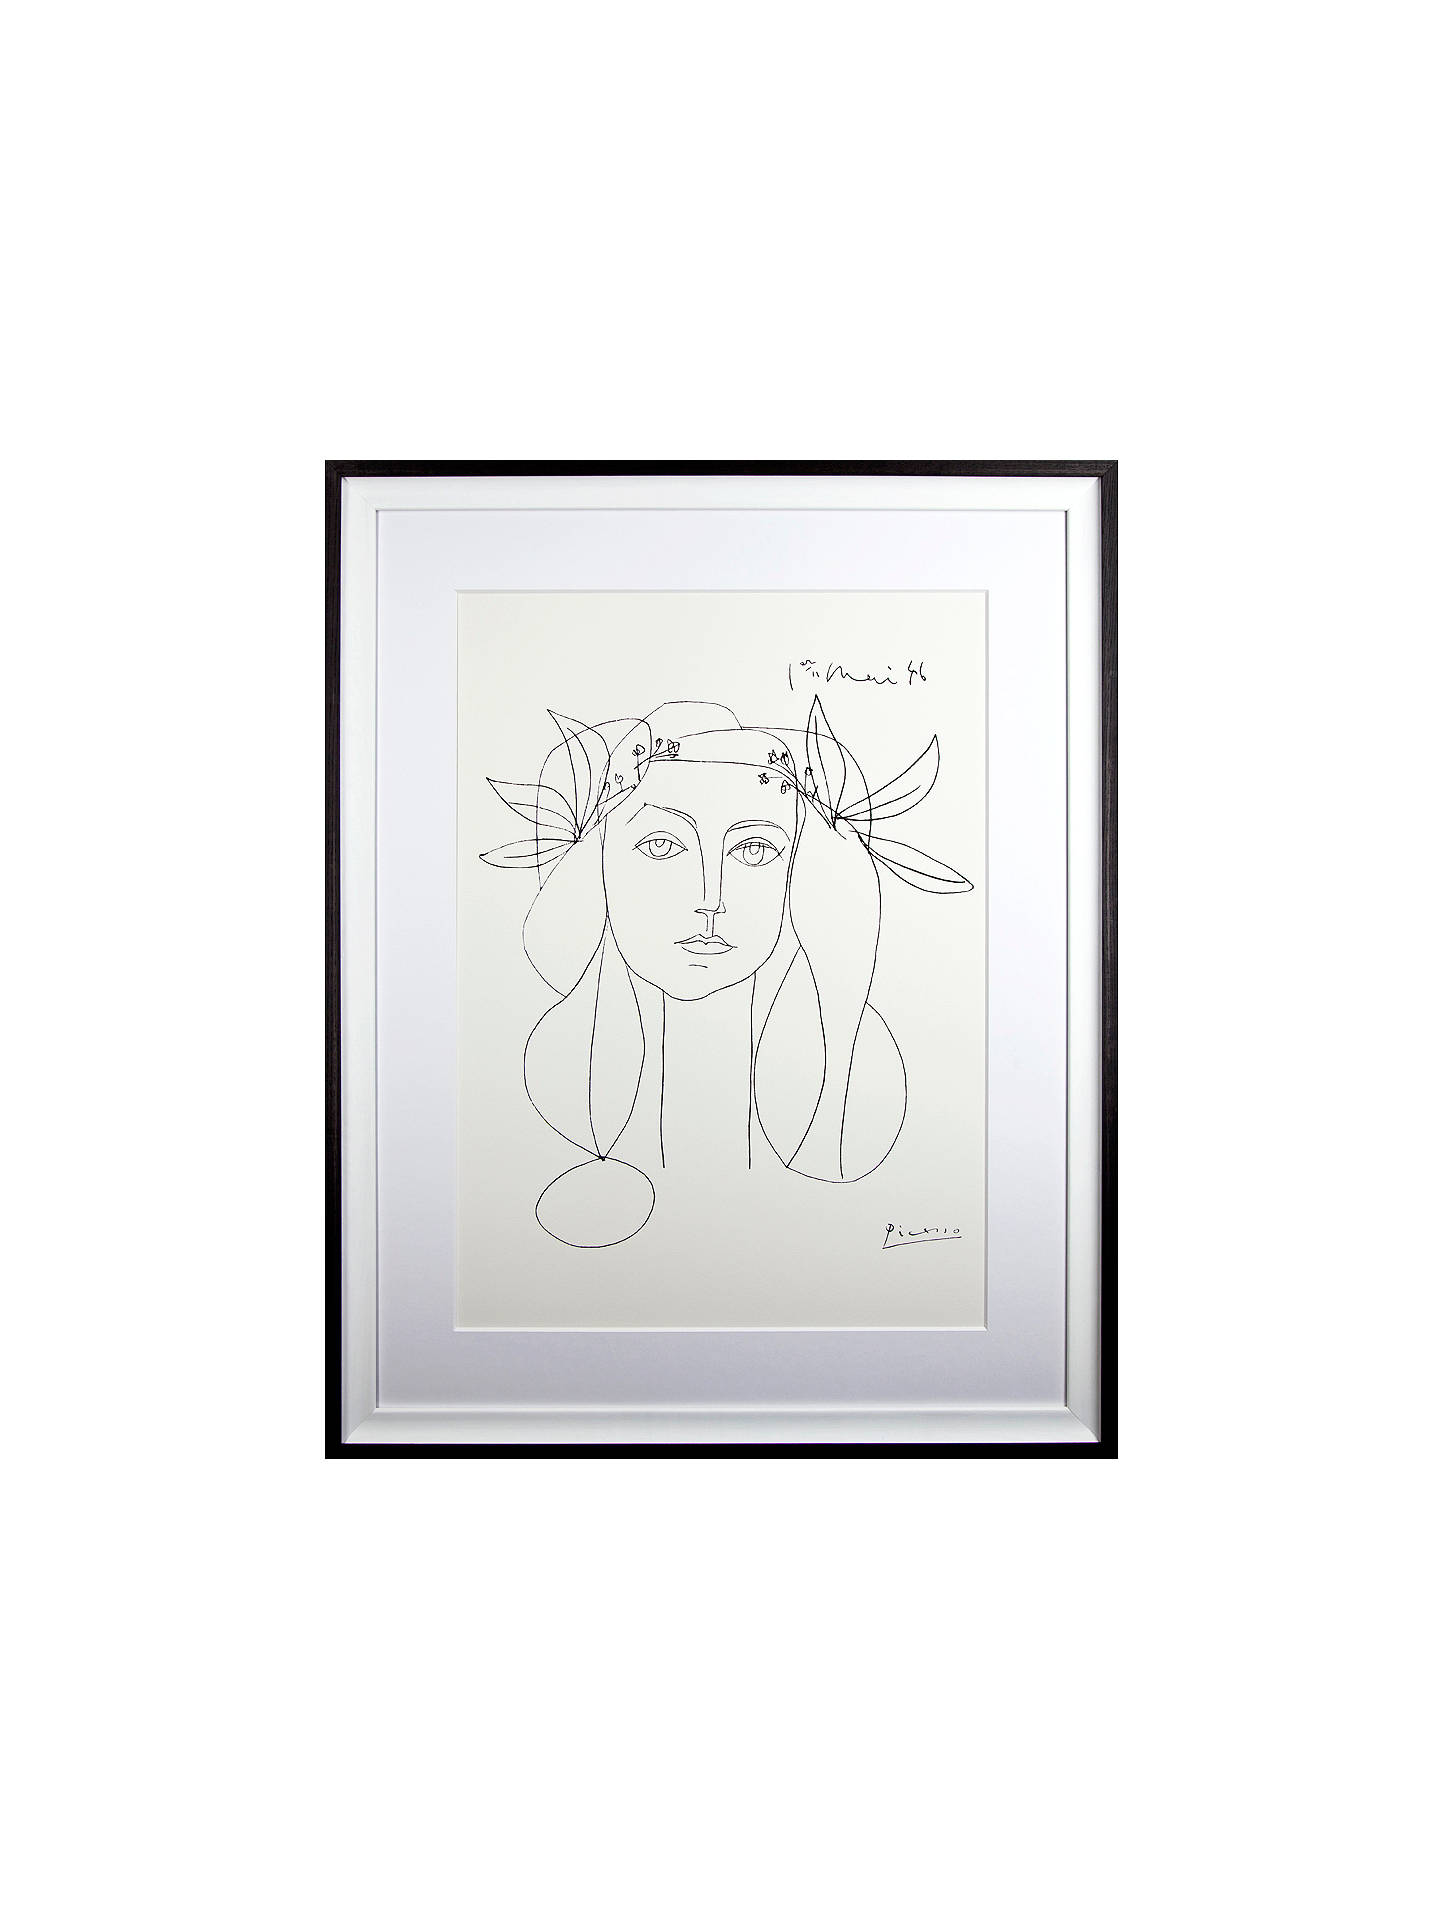 BuyPicasso 'Head, 1946' Framed Print, 94 x 74cm Online at johnlewis.com